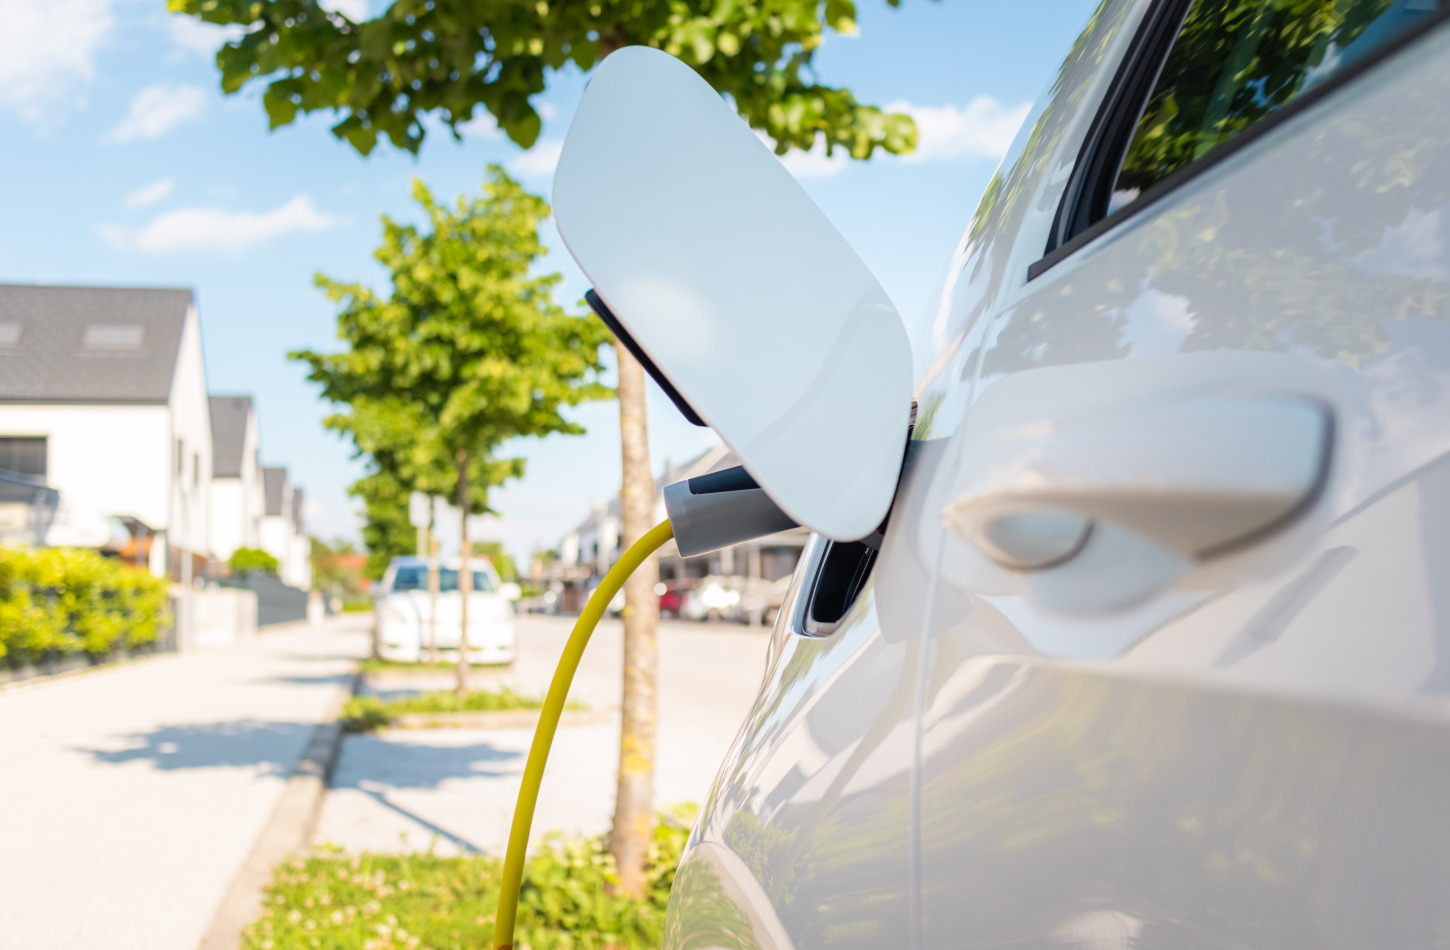 Electric-charging-point-installation-title-image